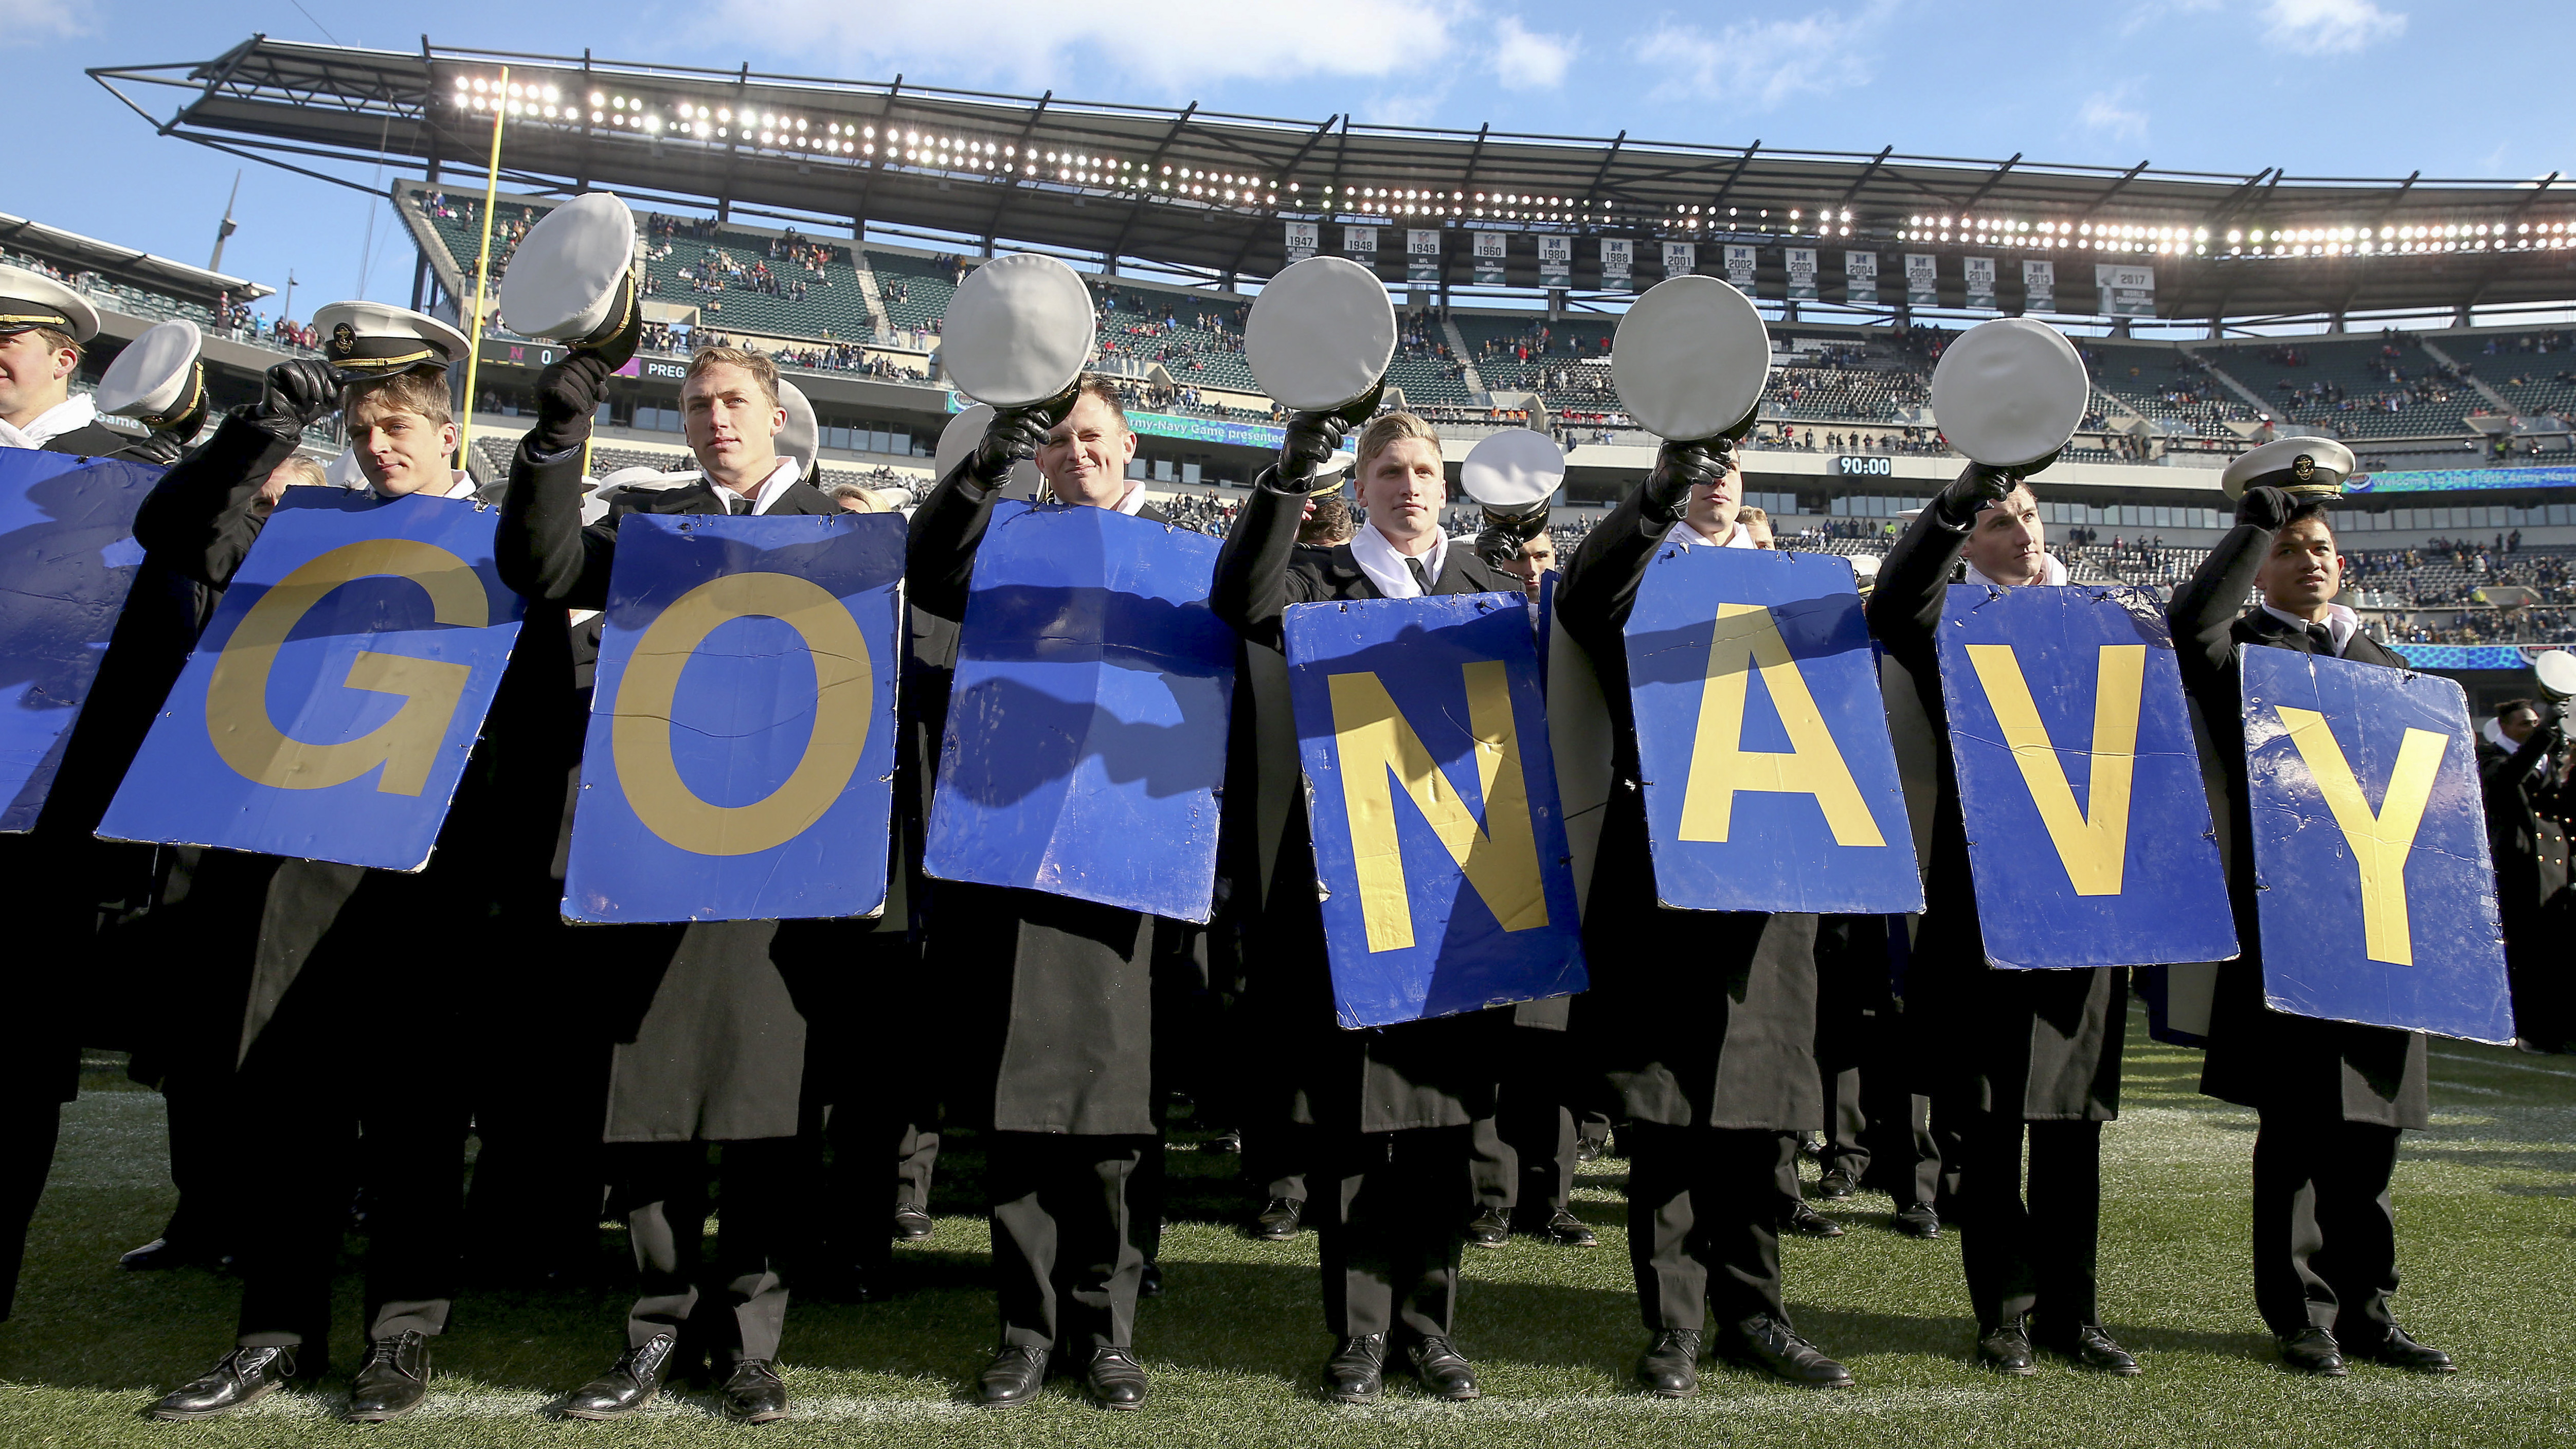 The Naval cadets celebrate after they marched on the field before the game between the Army Black Knights and the Navy Midshipmen on December 8, 2018 at Lincoln Financial Field in Philadelphia, Pennsylvania. (Photo by Elsa/Getty Images)